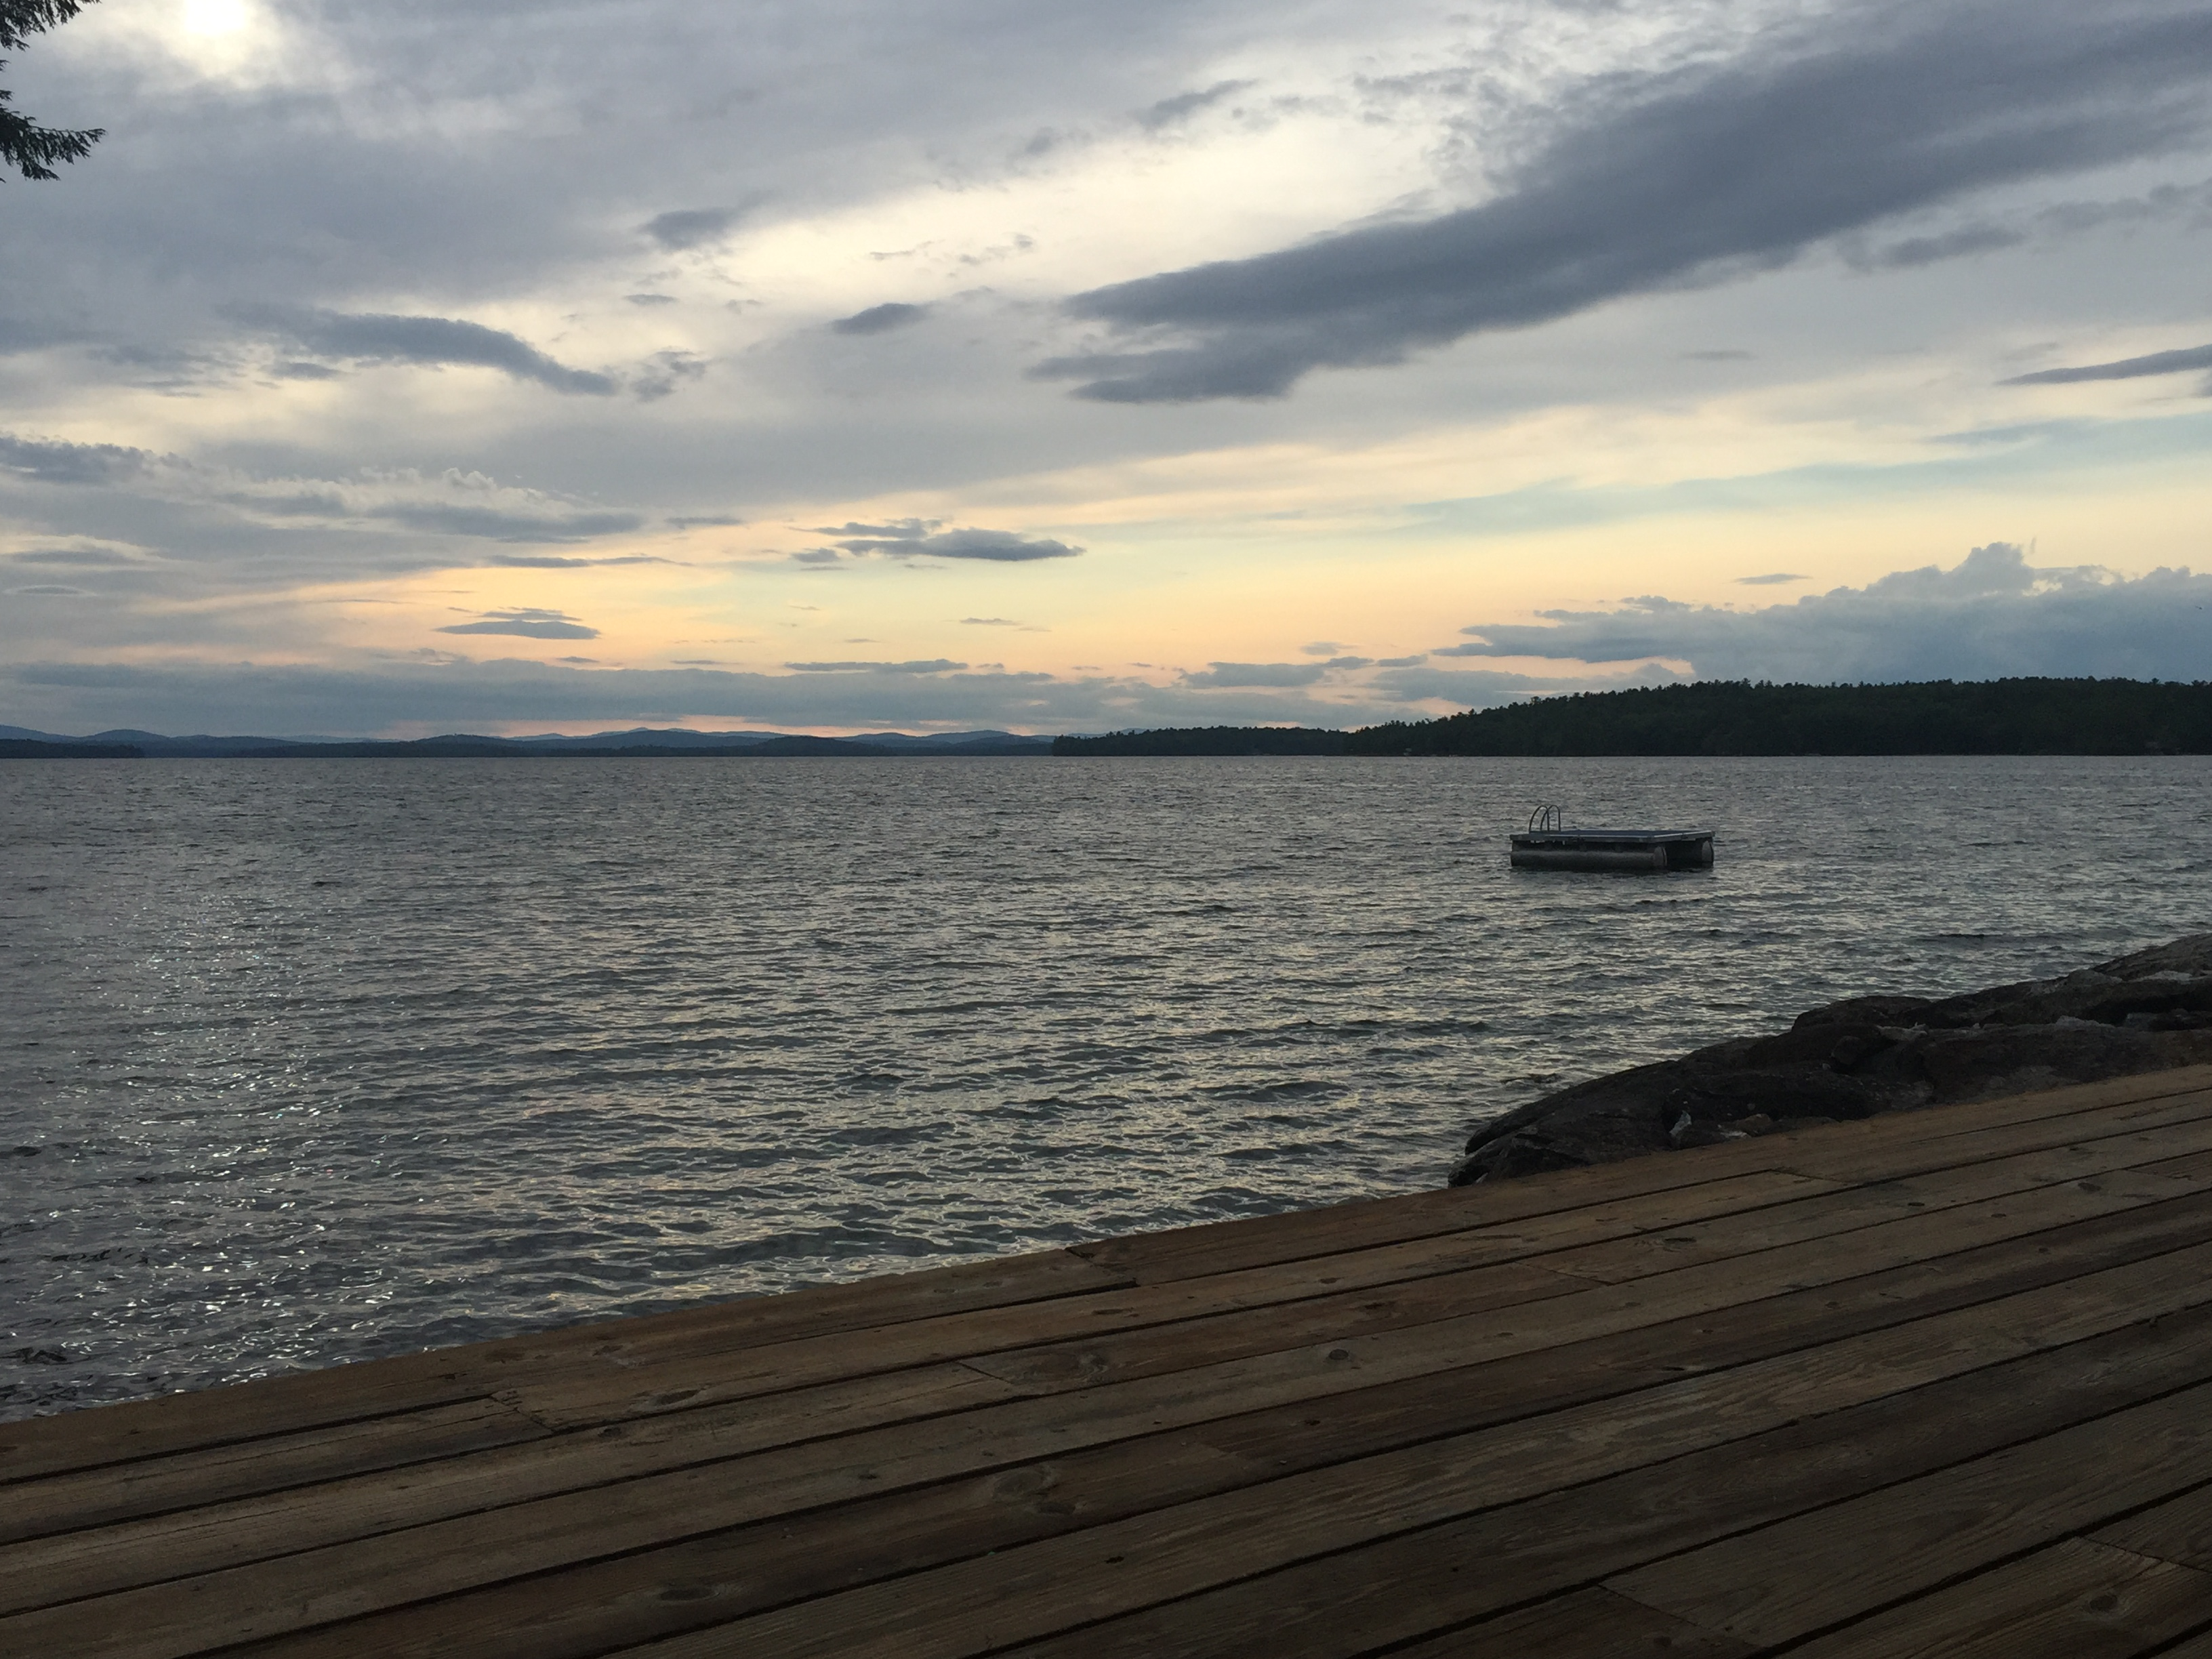 Sunset August 2016 at 58 Eaglmere Road on Winnipesaukee. Listed by Nicole Watkins